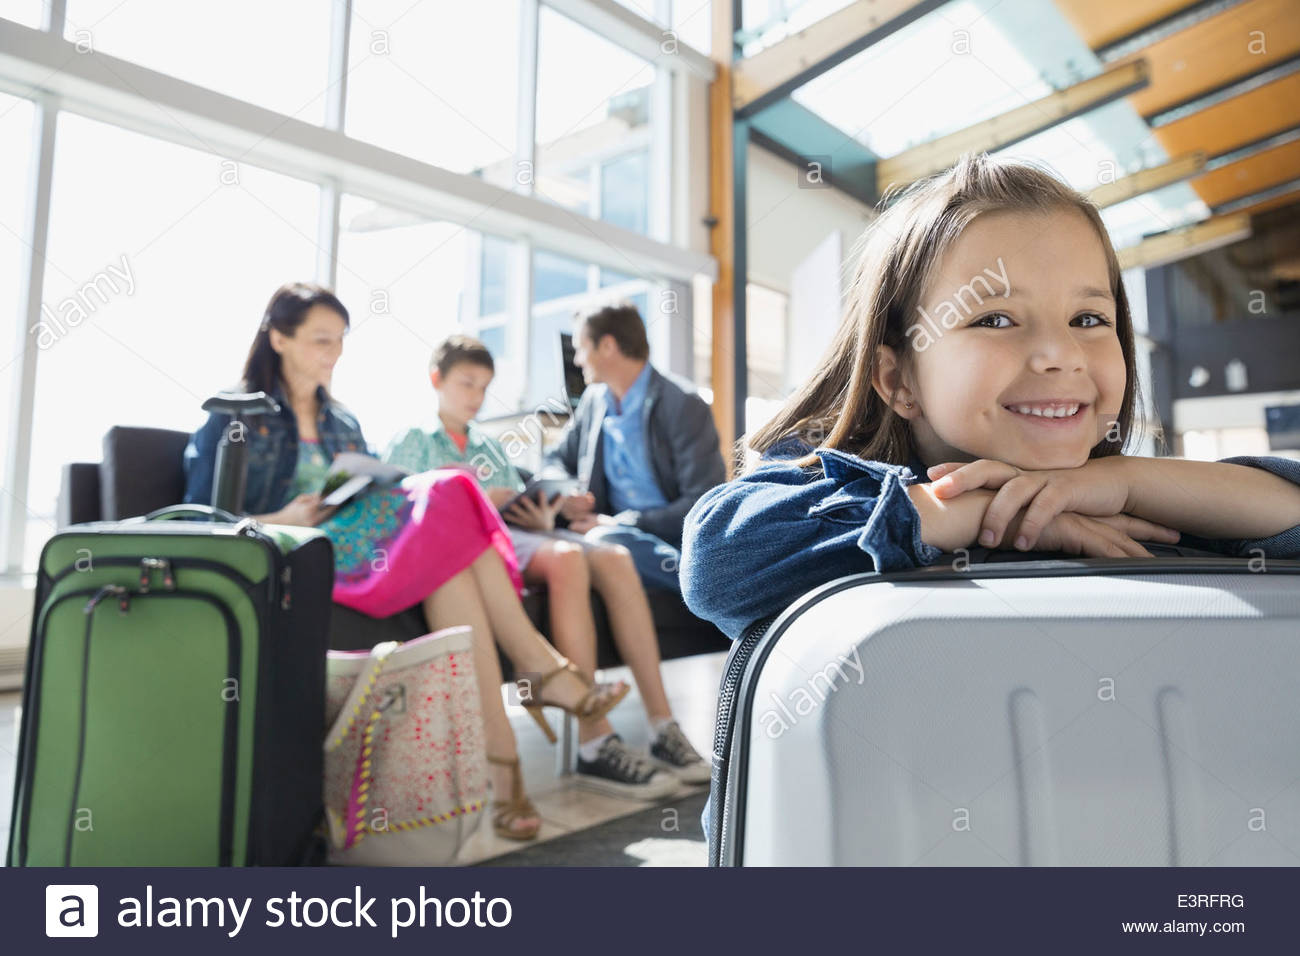 Portrait of smiling girl waiting in airport - Stock Image